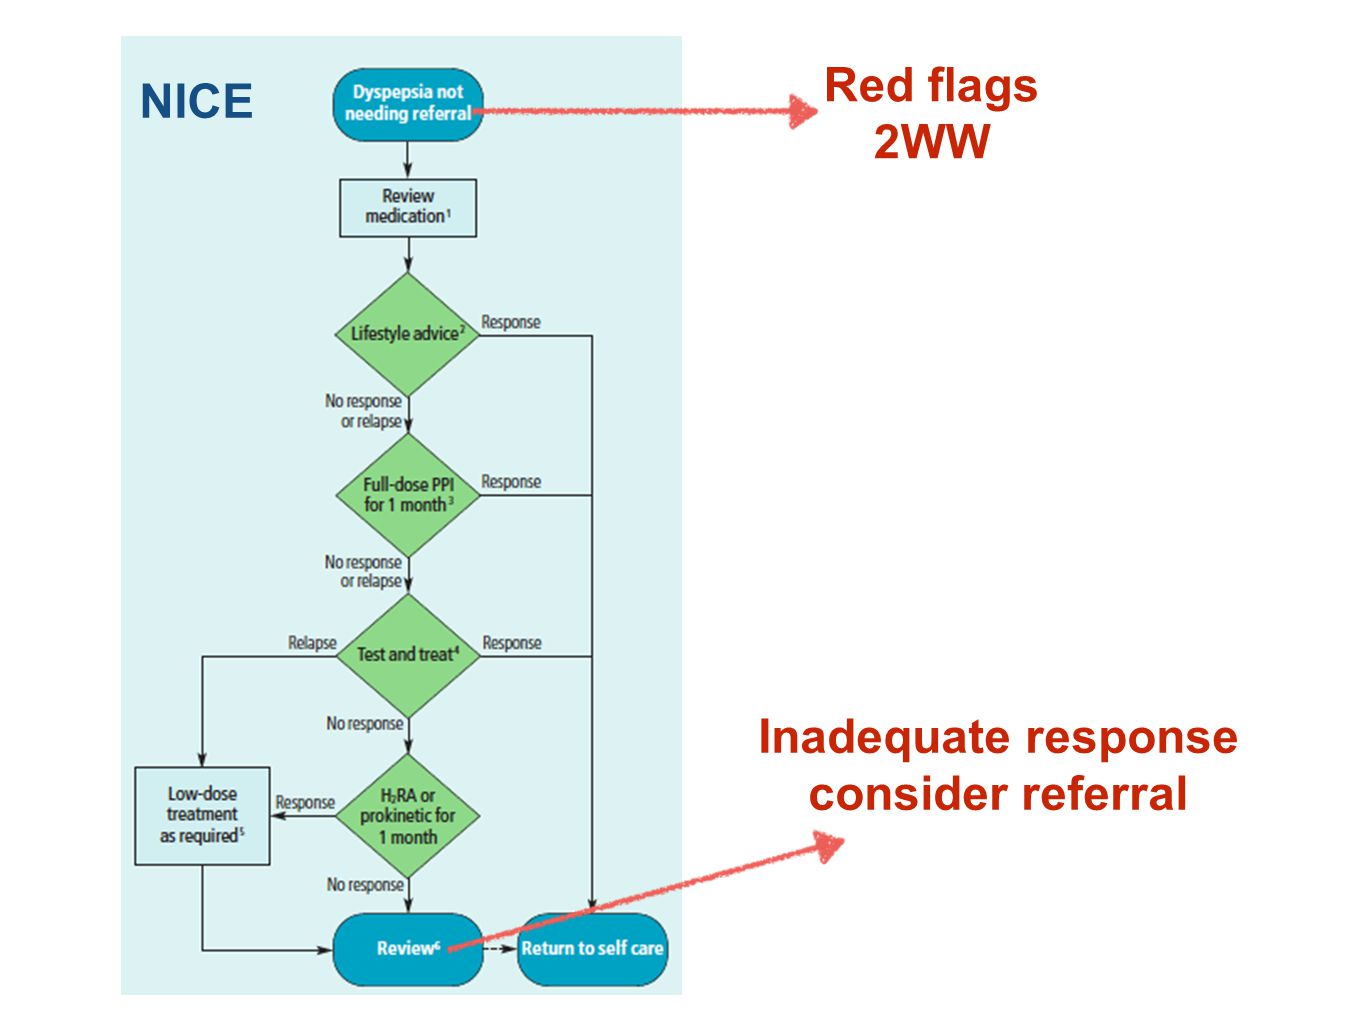 Red flags 2WW NICE Inadequate response consider referral